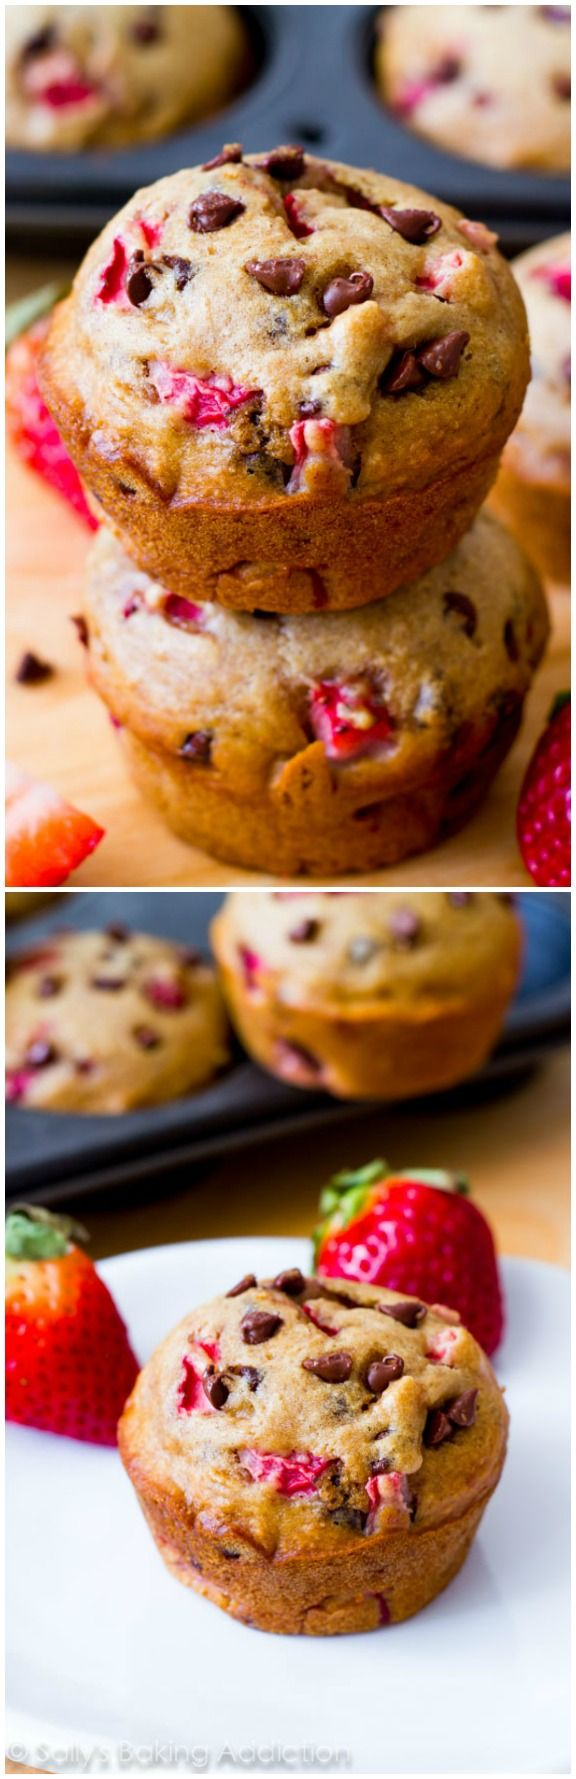 "Incredible ""lightened-up"" chocolate chip muffins with fresh strawberries. Nearly fat-free and only 140 calories each! @Sally McWilliam [Sally's Baking Addiction]"